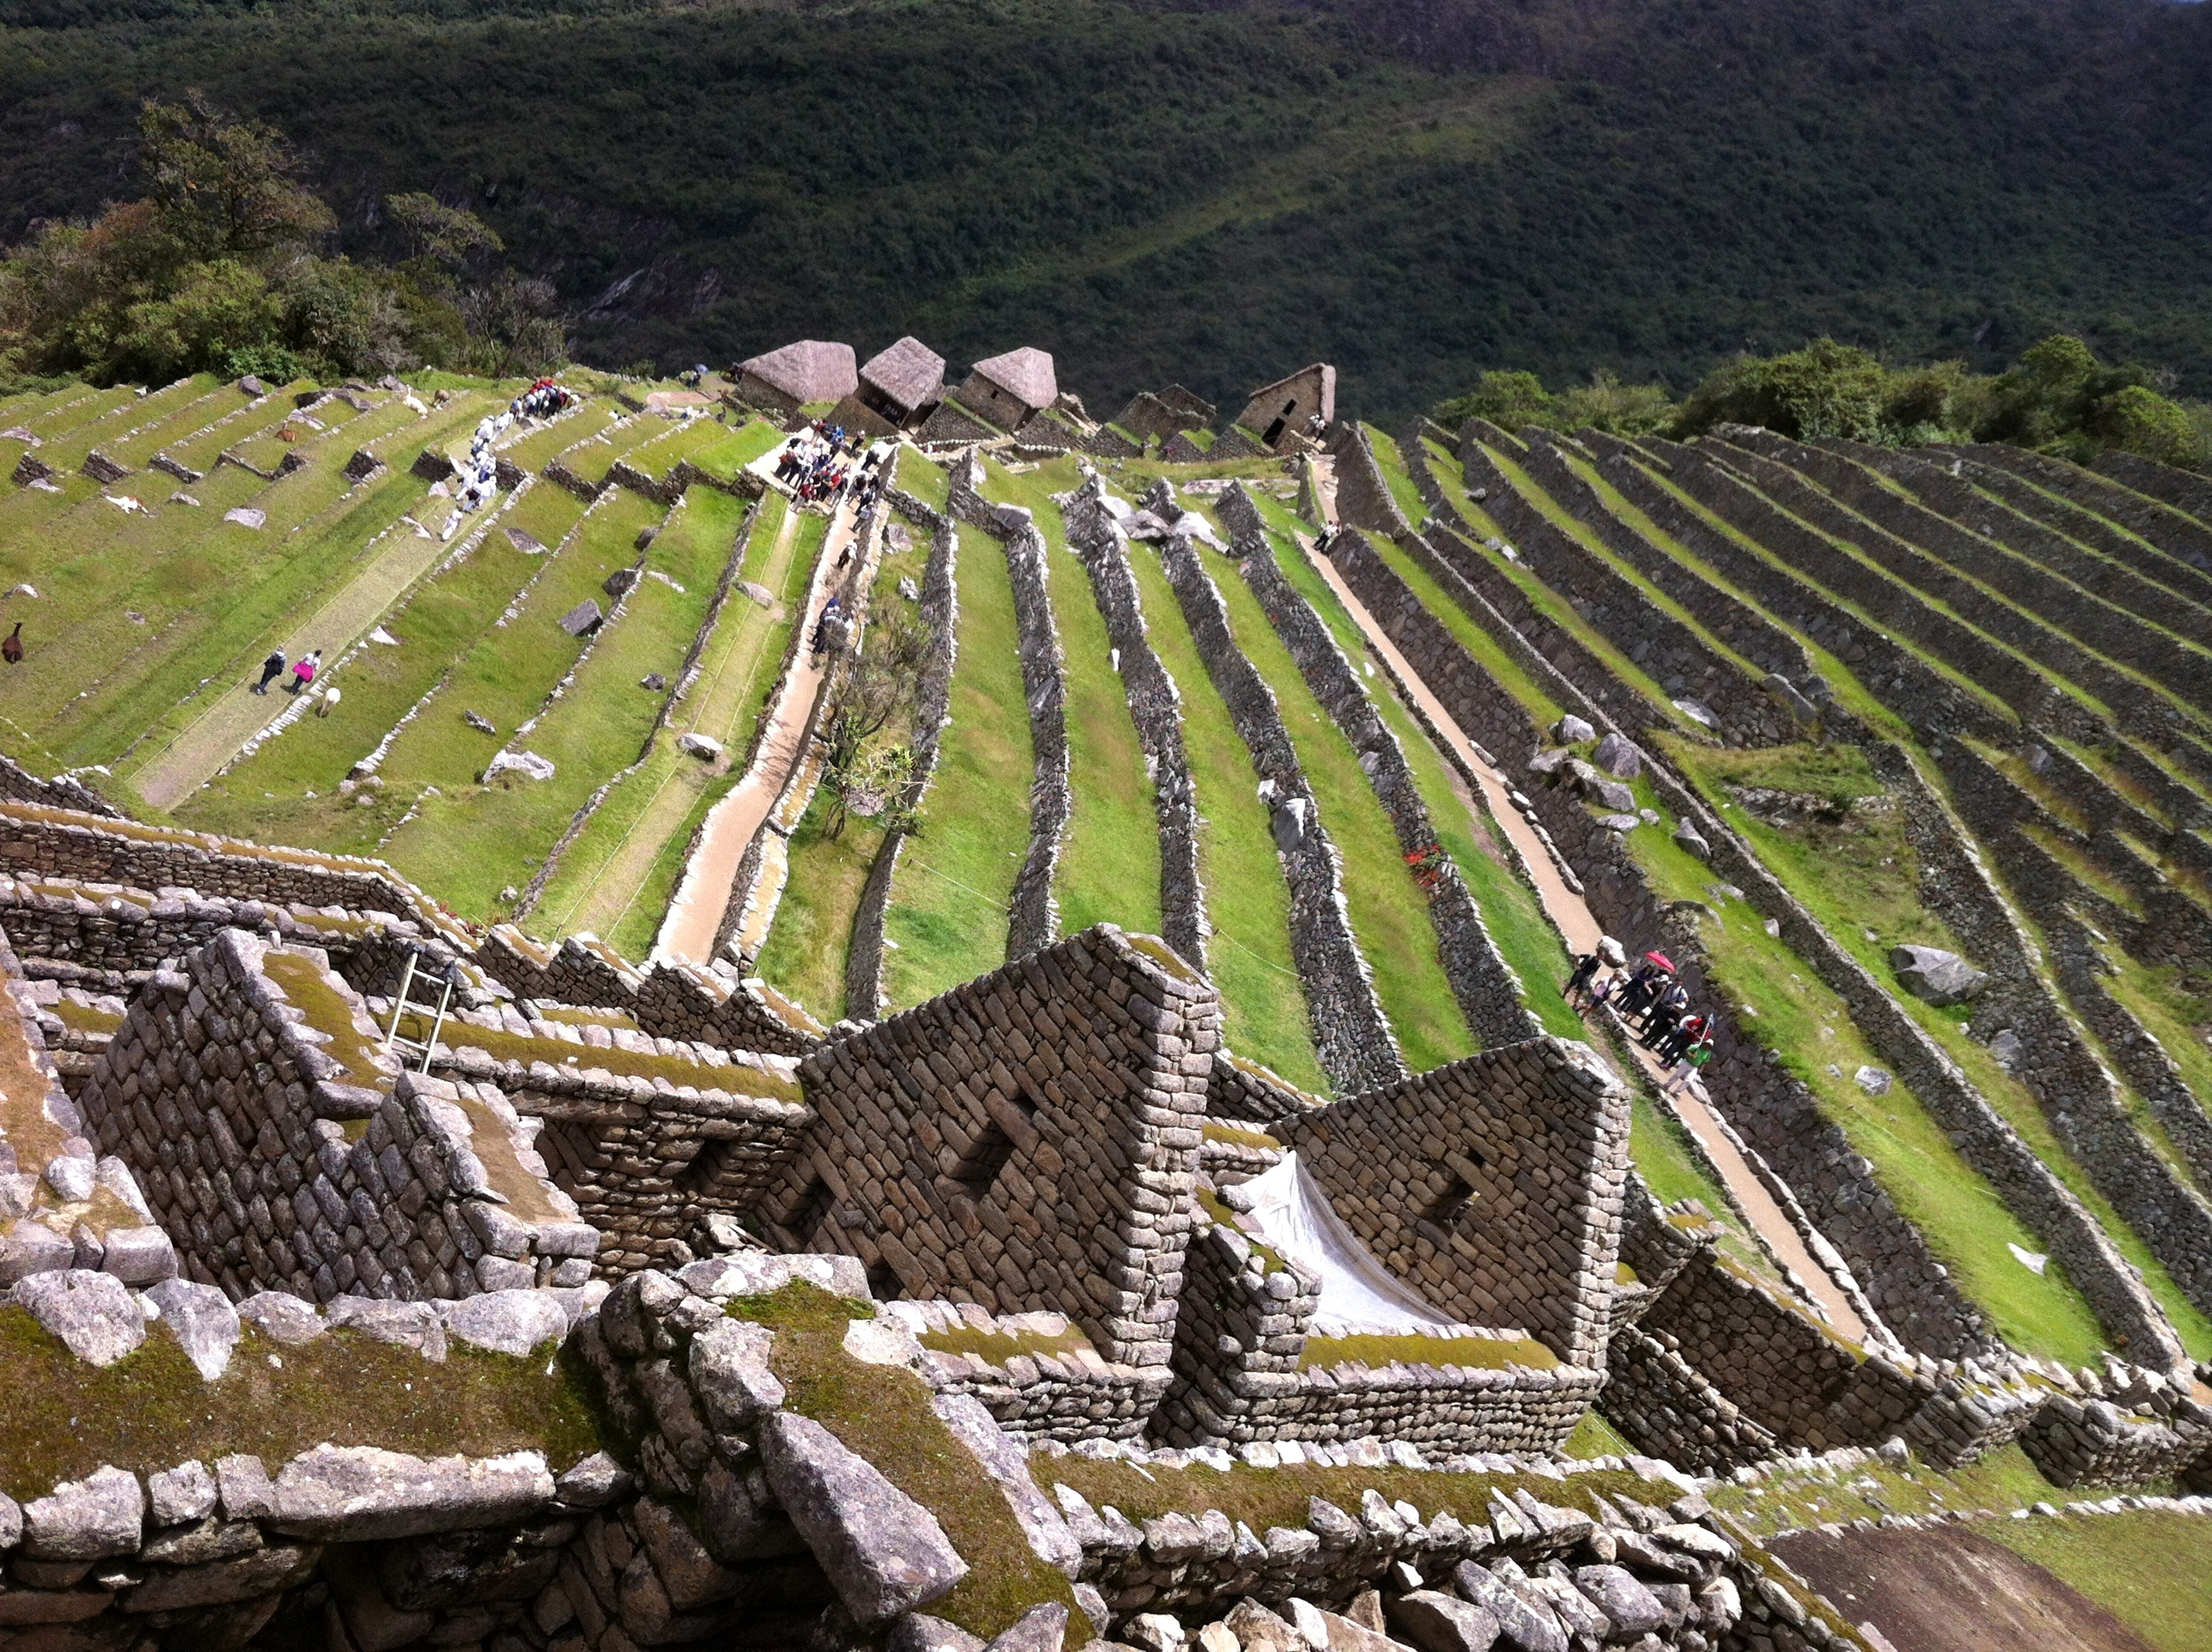 the agricultural terraces